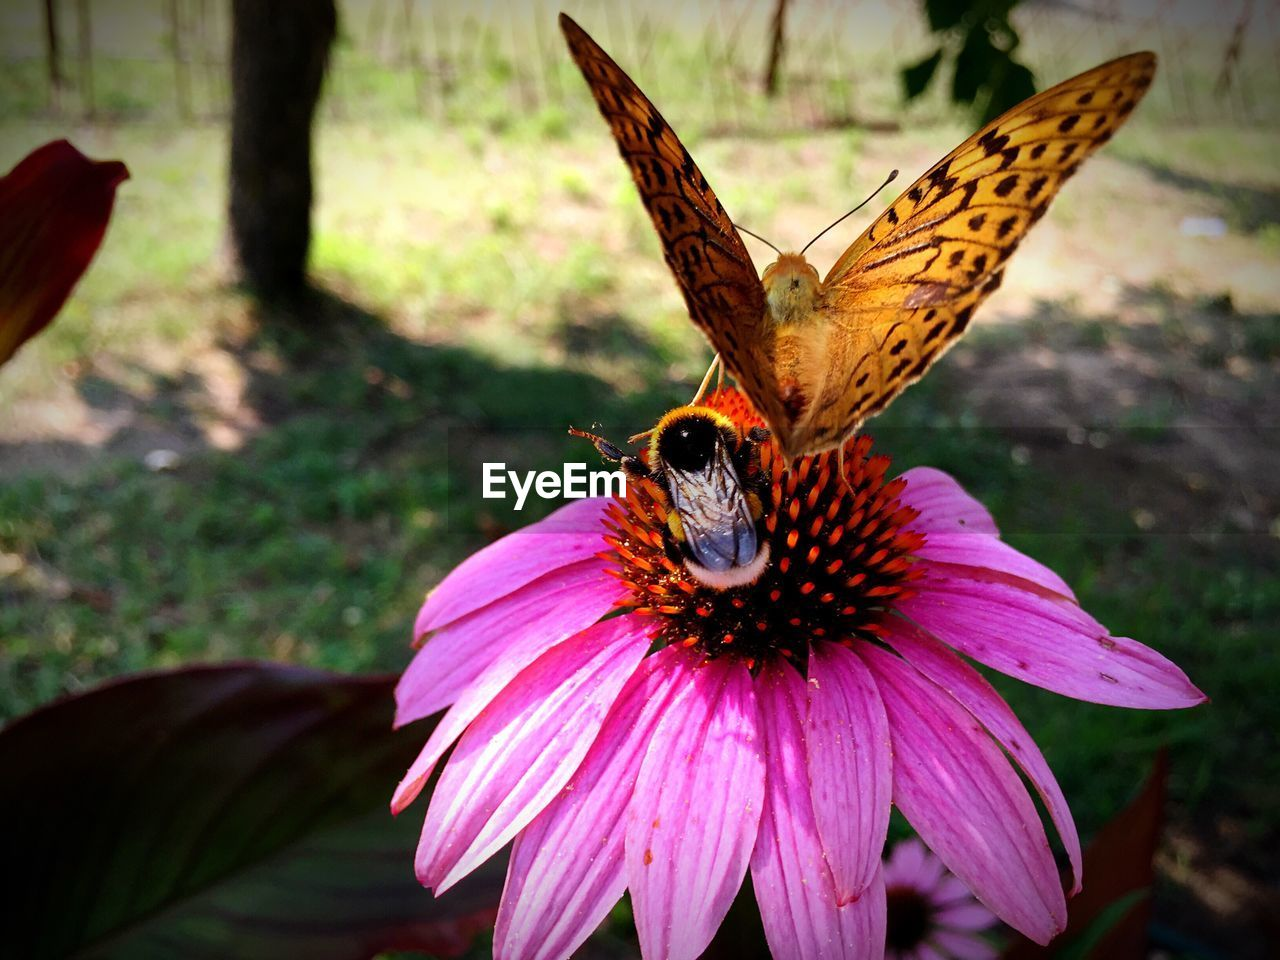 insect, animal themes, animals in the wild, one animal, butterfly - insect, nature, no people, fragility, flower, butterfly, petal, growth, beauty in nature, day, outdoors, freshness, close-up, pollination, animal wildlife, flower head, plant, spread wings, perching, eastern purple coneflower